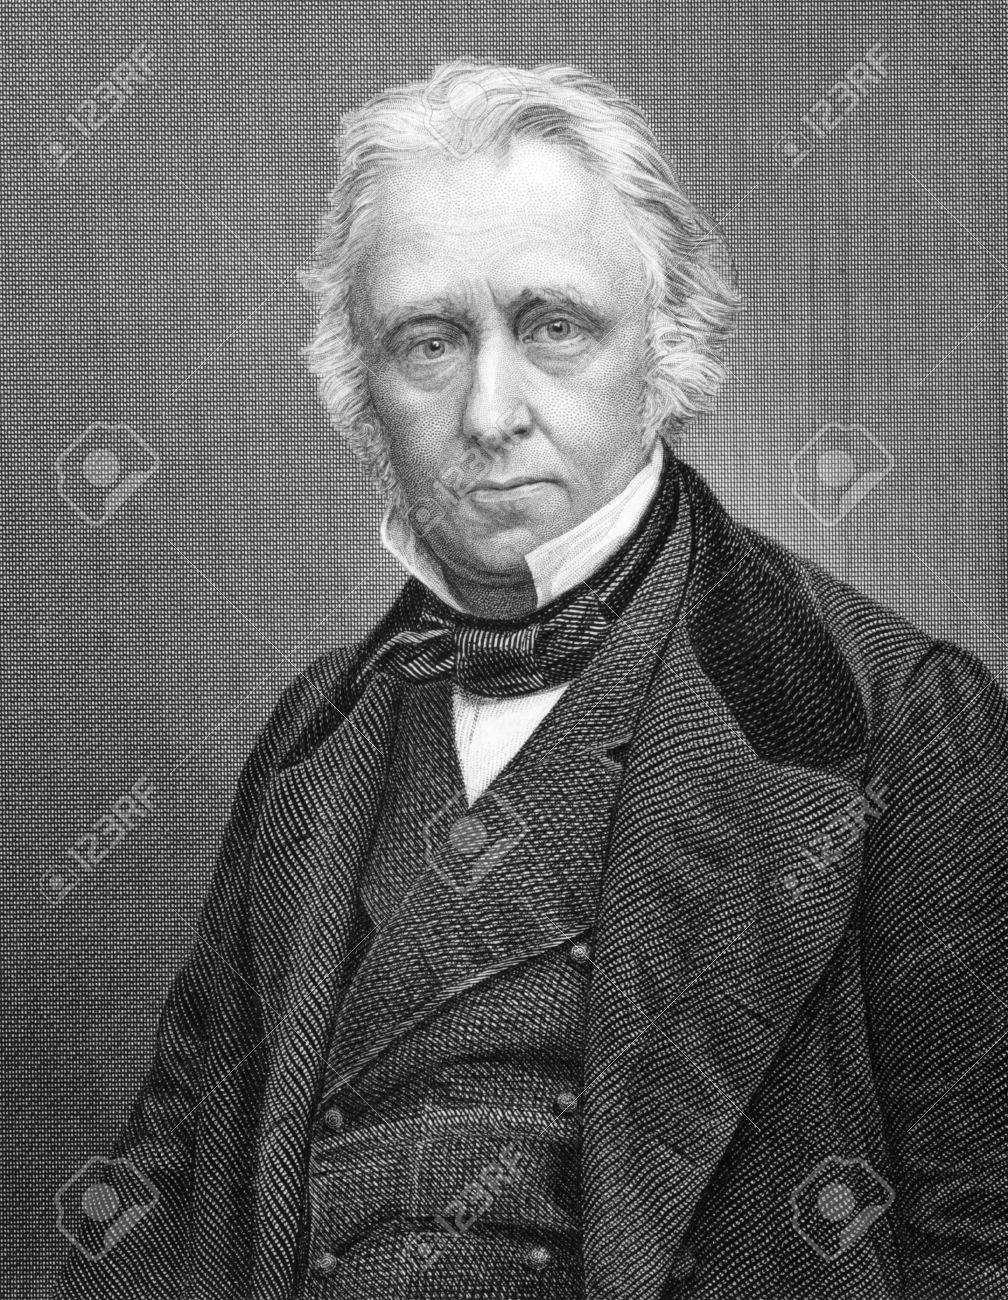 Thomas Babington Macaulay, 1st Baron Macaulay (1800-1859) on 1800s engraving. British poet, historian and Whig politician. Engraved by C.Cook and published by W.Mackenzie. Stock Photo - 9794828